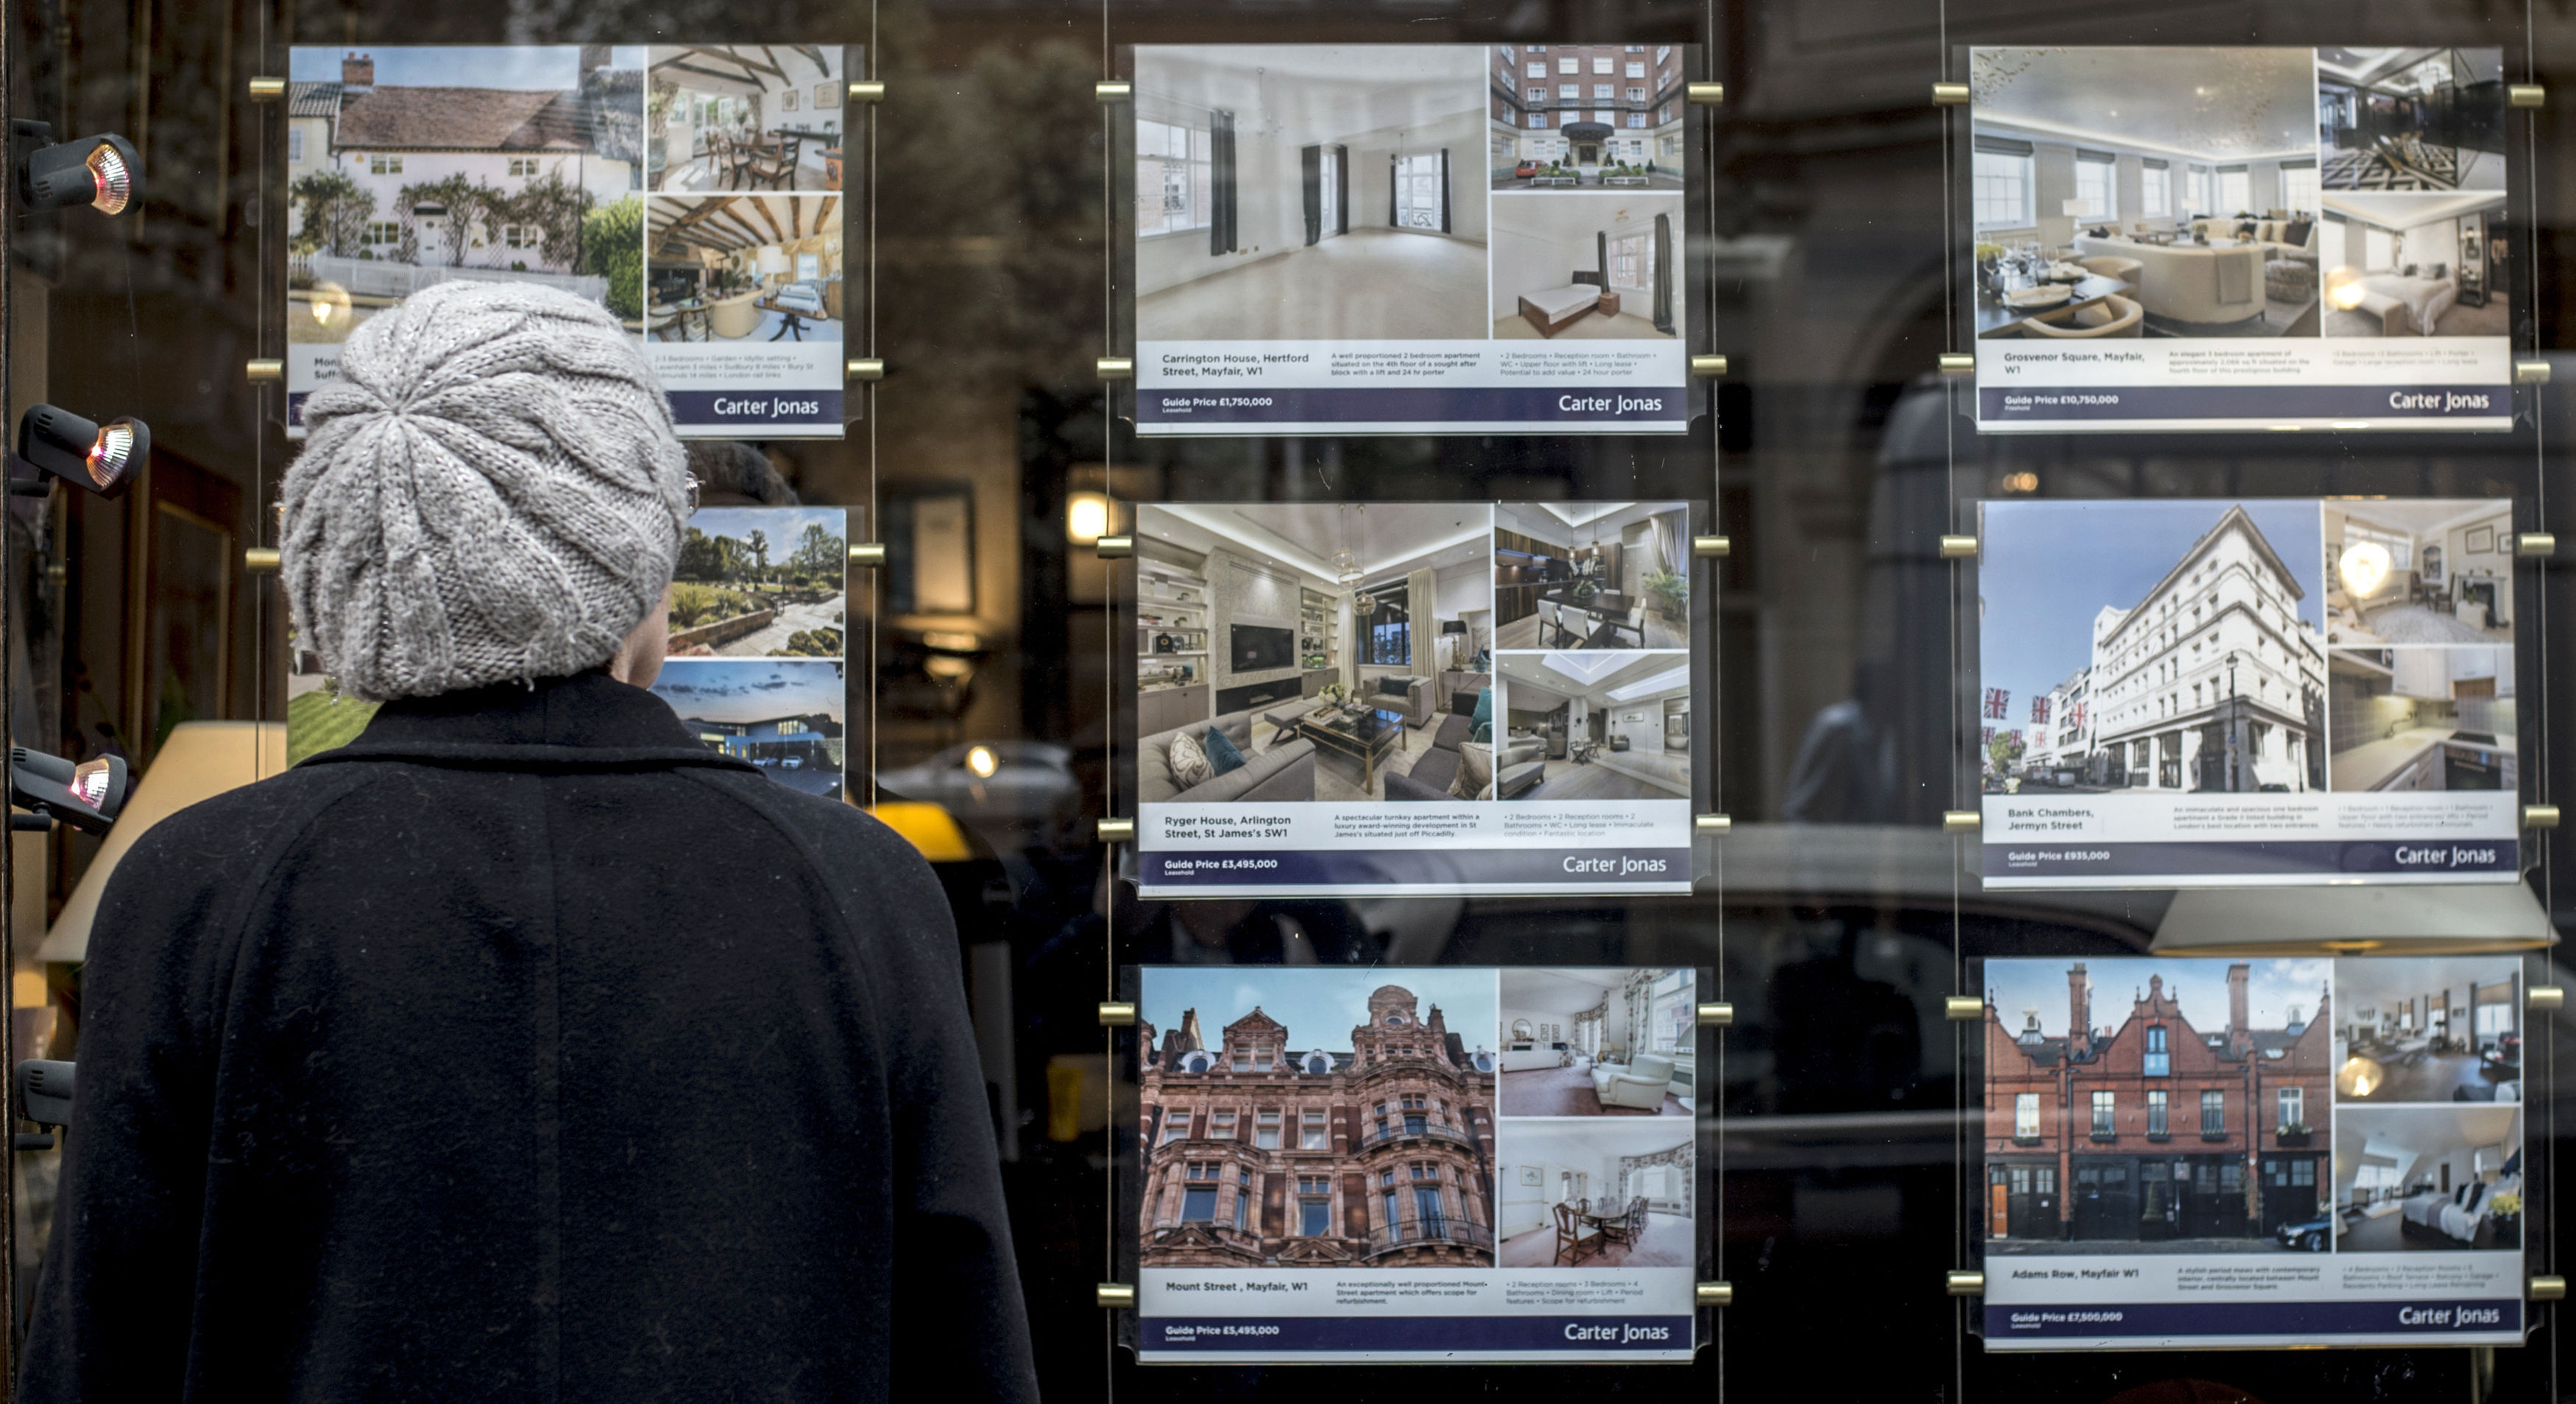 The research, from property website Zoopla, found the typical decision to buy a home when viewing it in person takes 27 minutes - around the same length of time as an episode of Coronation Street. (Lauren Hurley/PA Wire)